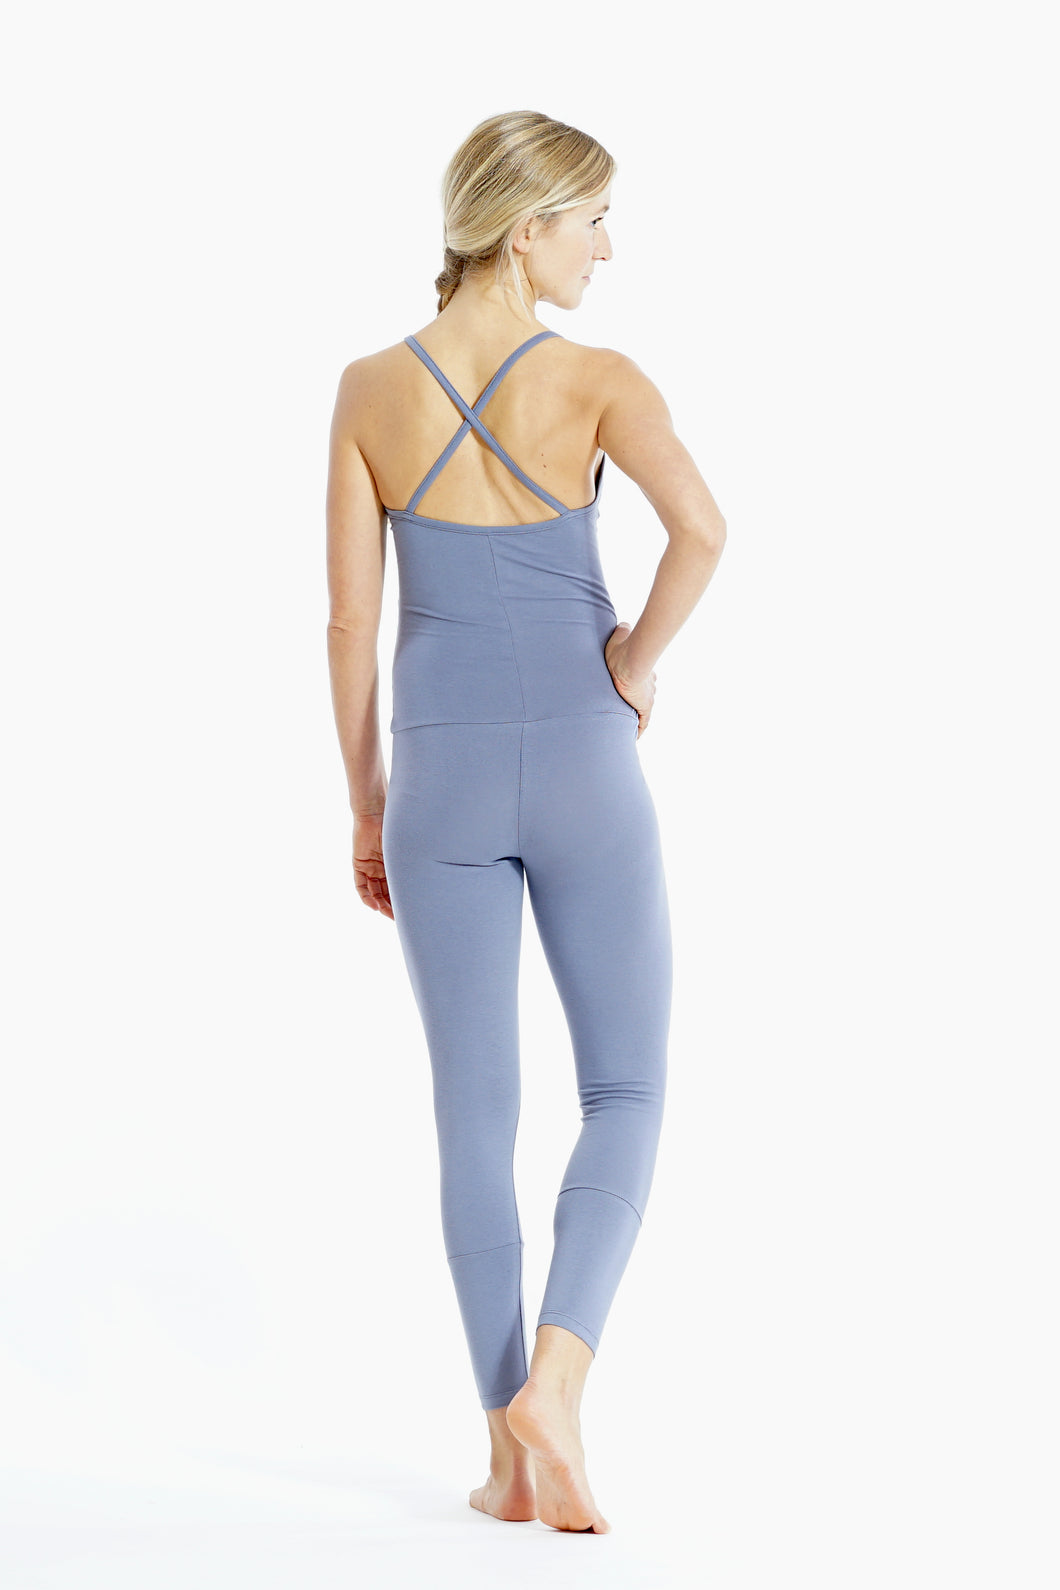 Yoga Jumpsuit Cross